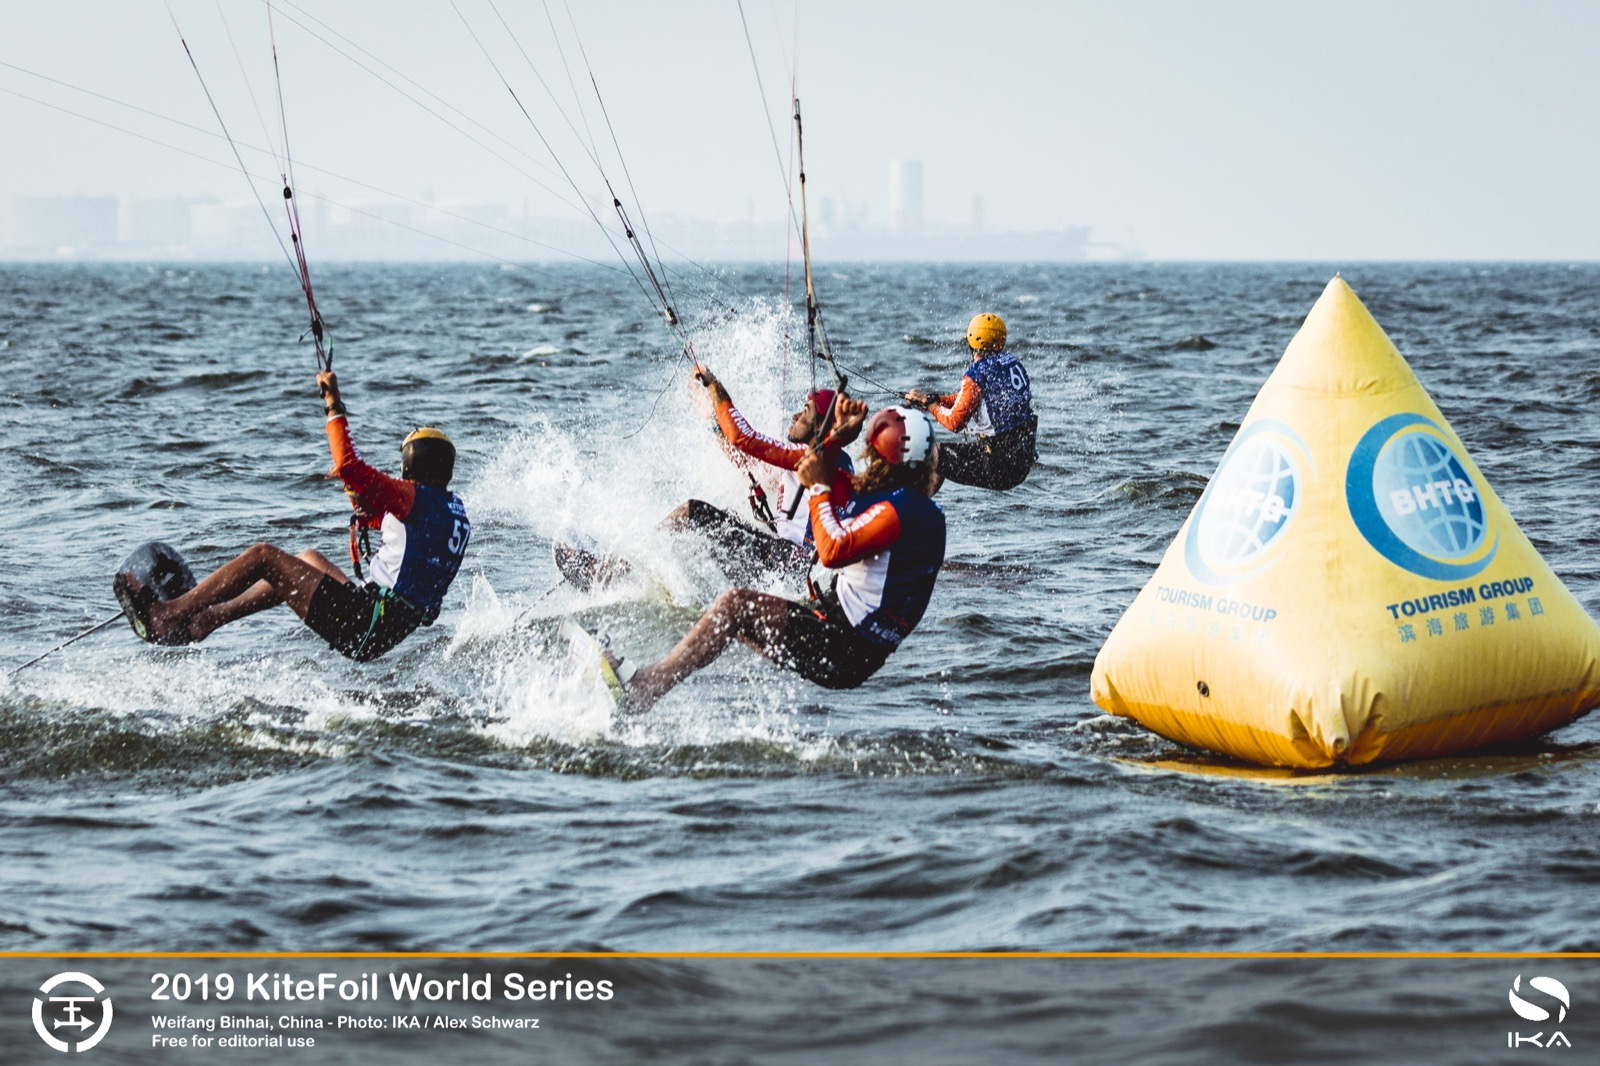 IKA Kitefoil World Series in race shot